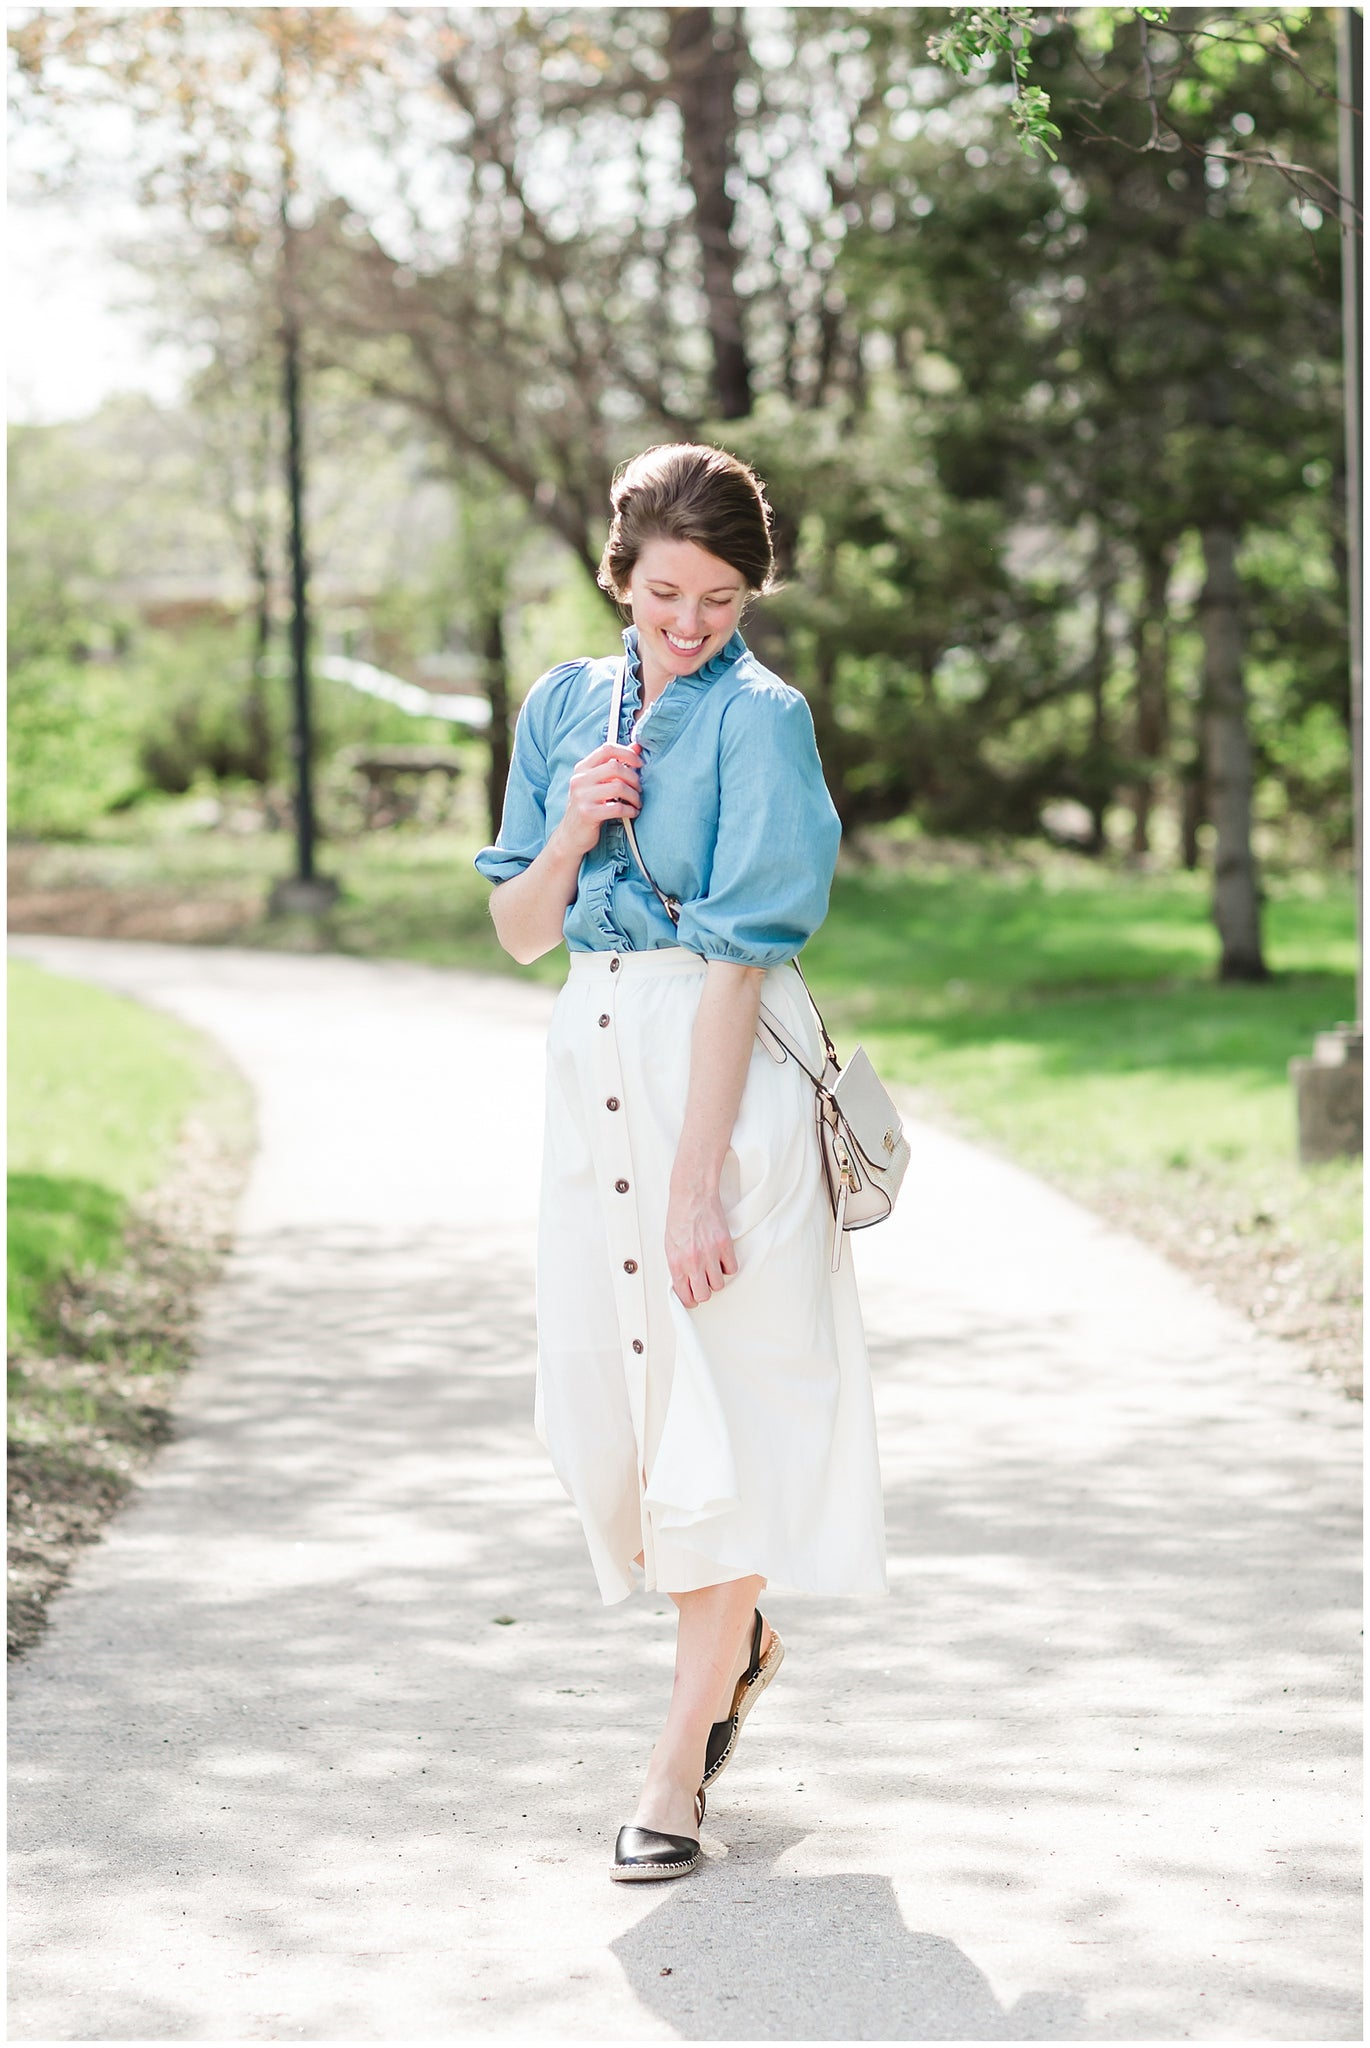 Female in midi length white a-line skirt with denim blouse, crossbody handbag and black sandals